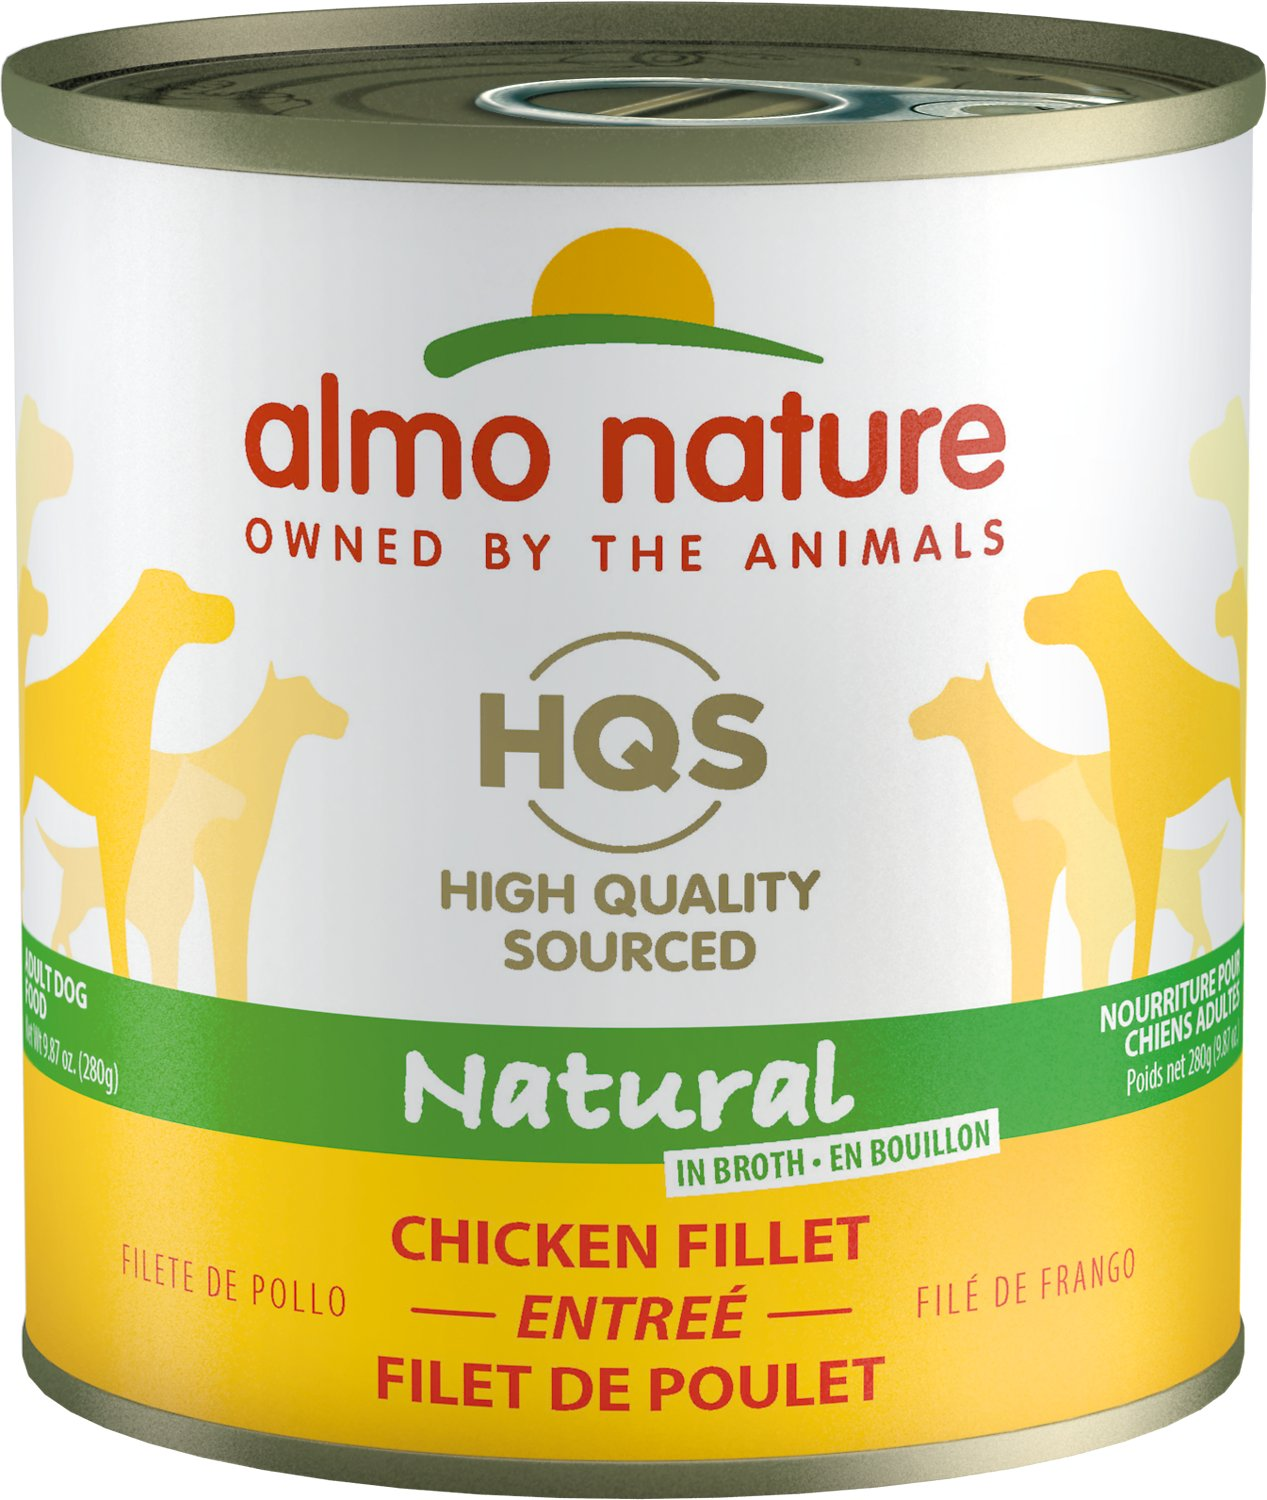 By Nature Canned Dog Food Reviews